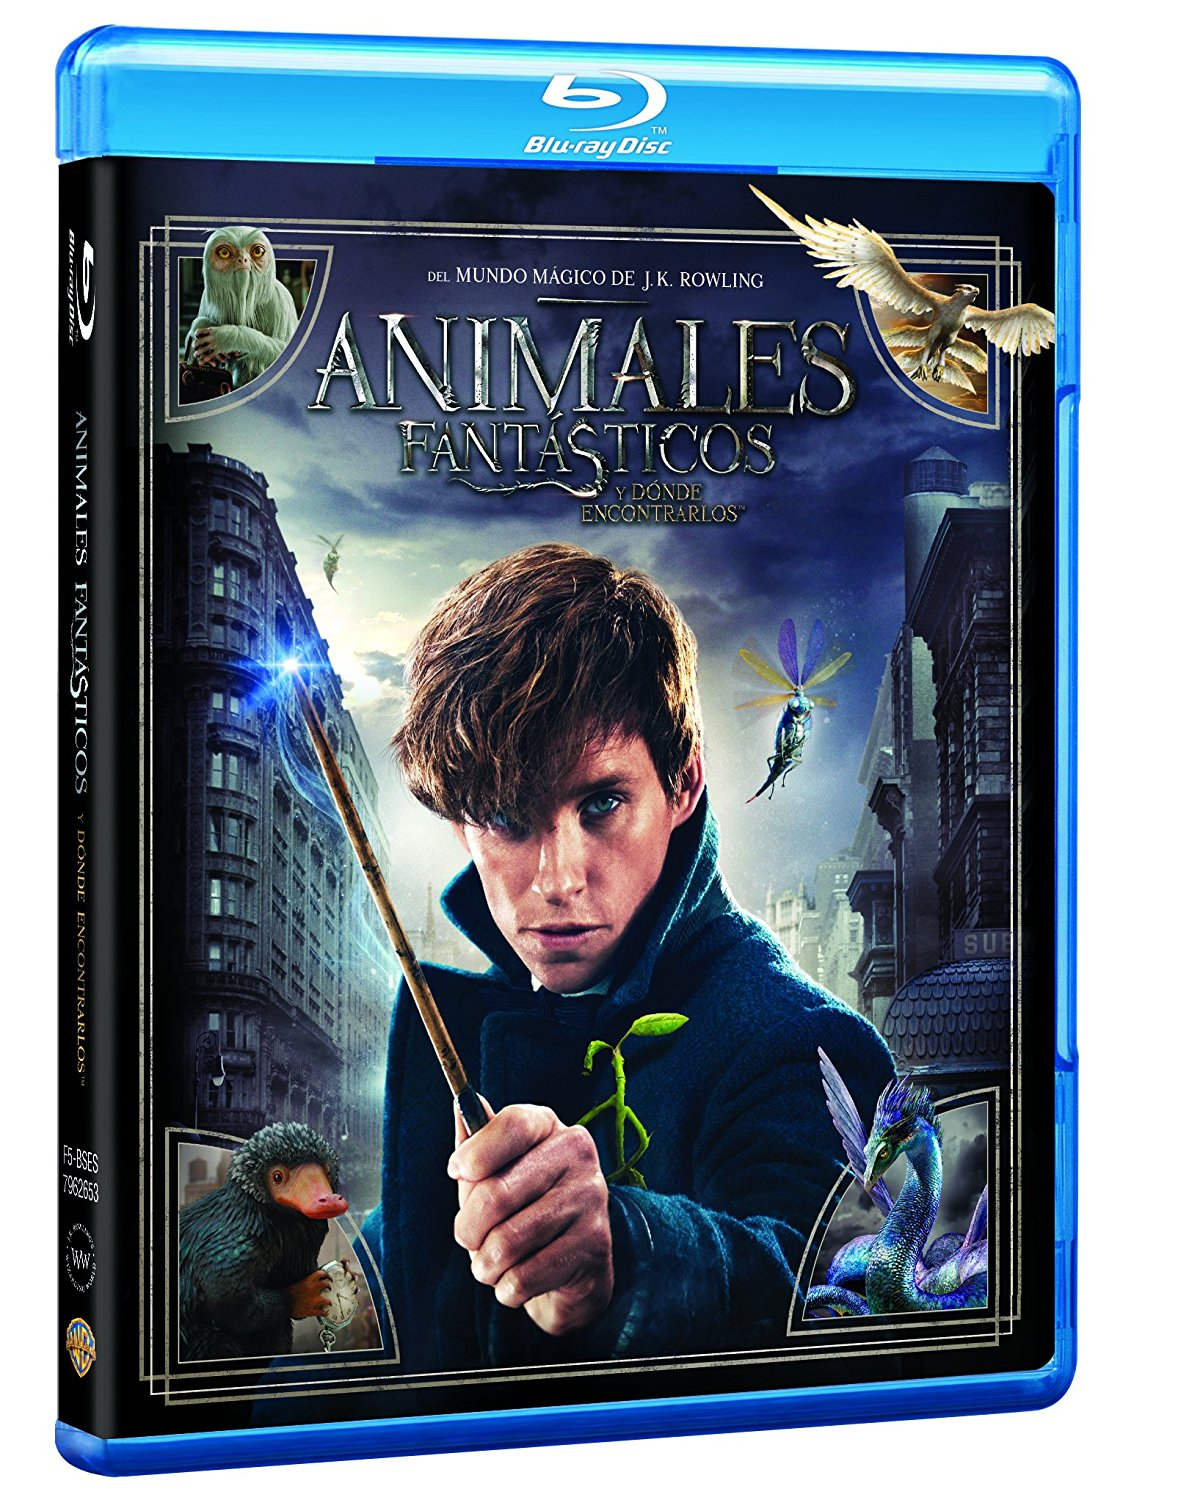 Animales fantasticos y donde encontrarlos -preventa-bluray